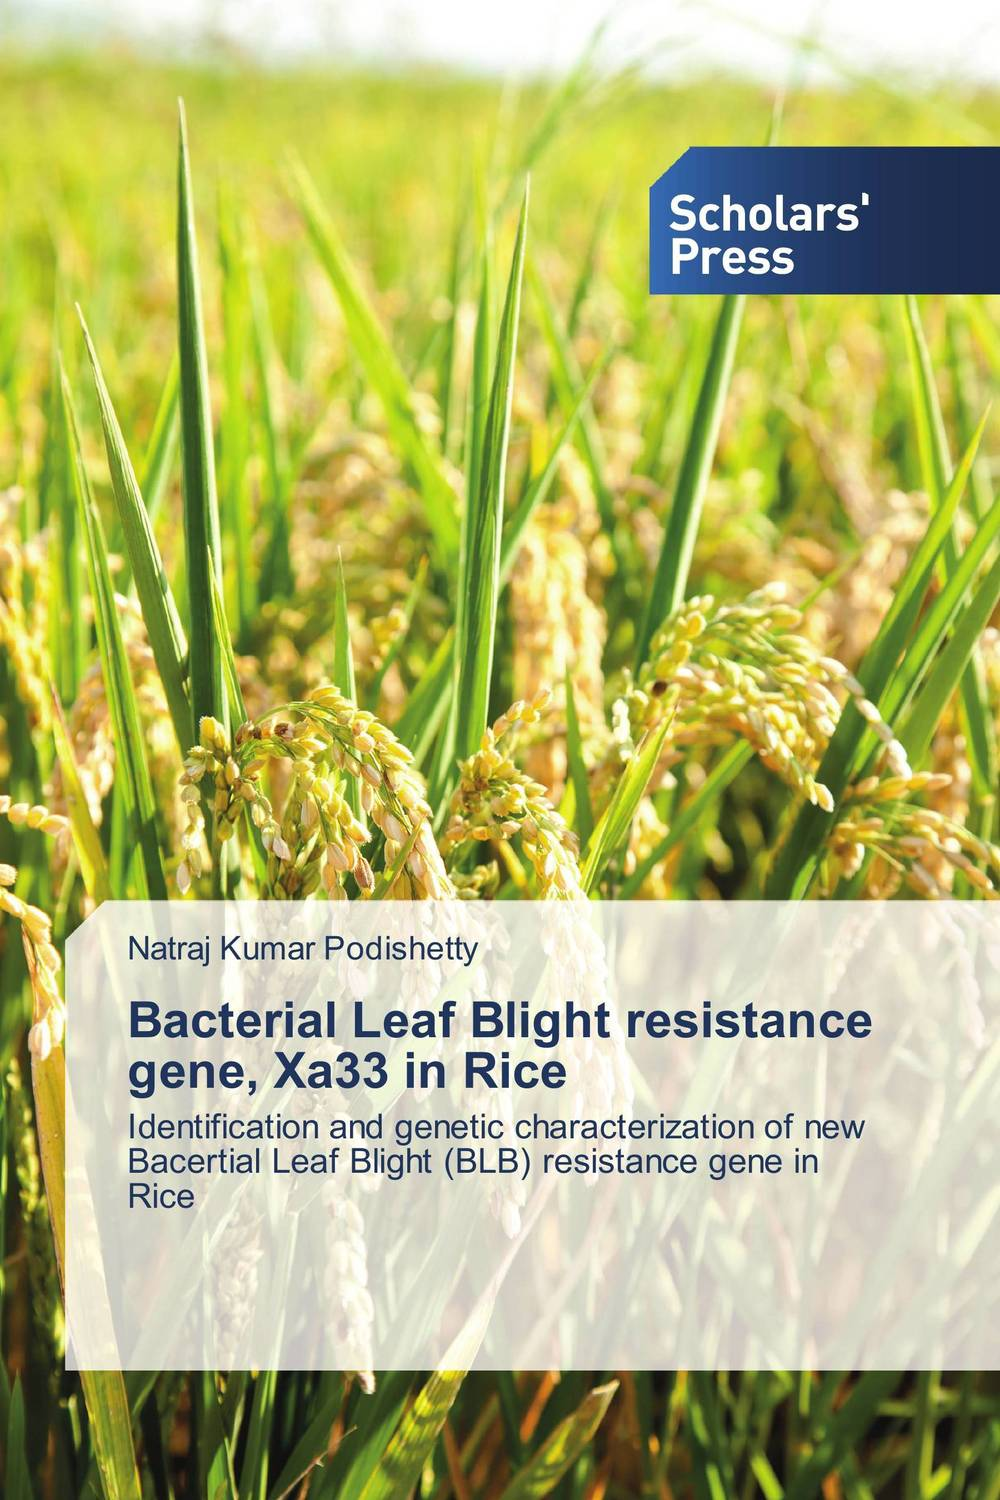 Bacterial Leaf Blight resistance gene, Xa33 in Rice polymorphisms at candidate genes for disease resistance in chicken